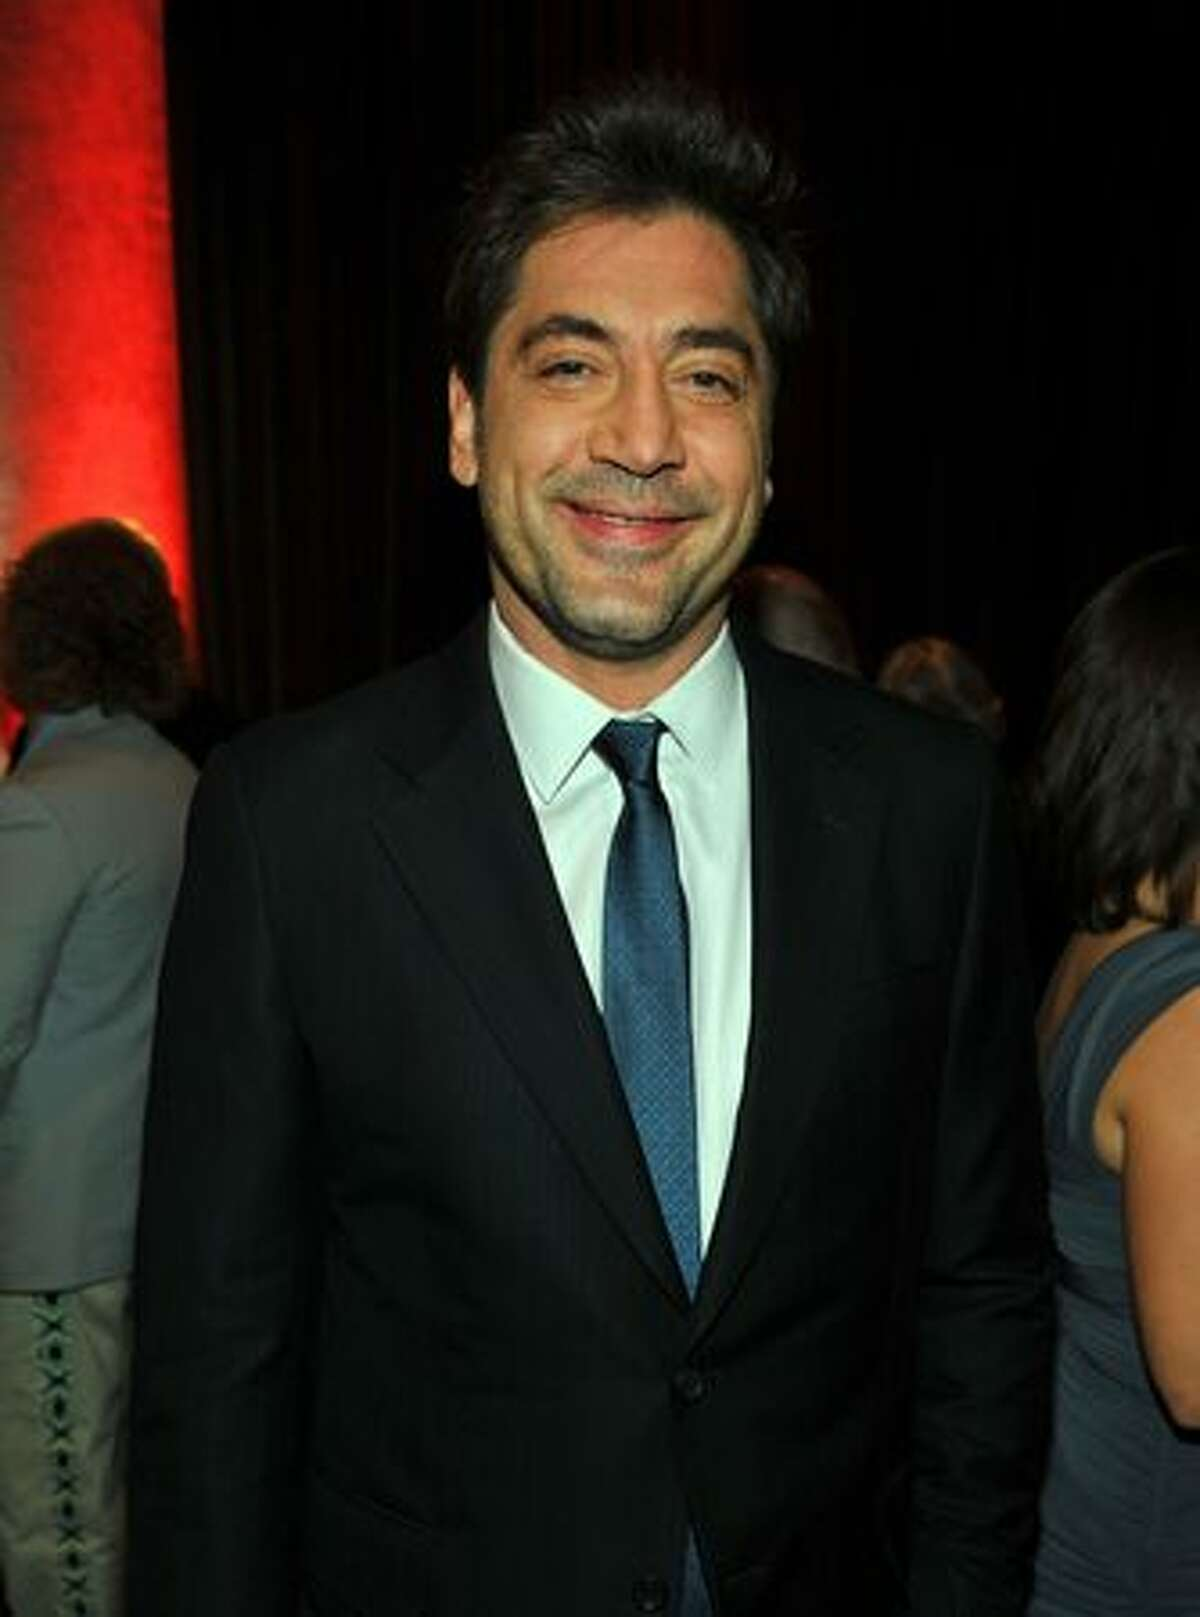 Actor Javier Bardem attends the 83rd Academy Awards nominations luncheon held at the Beverly Hilton Hotel in Beverly Hills, California.